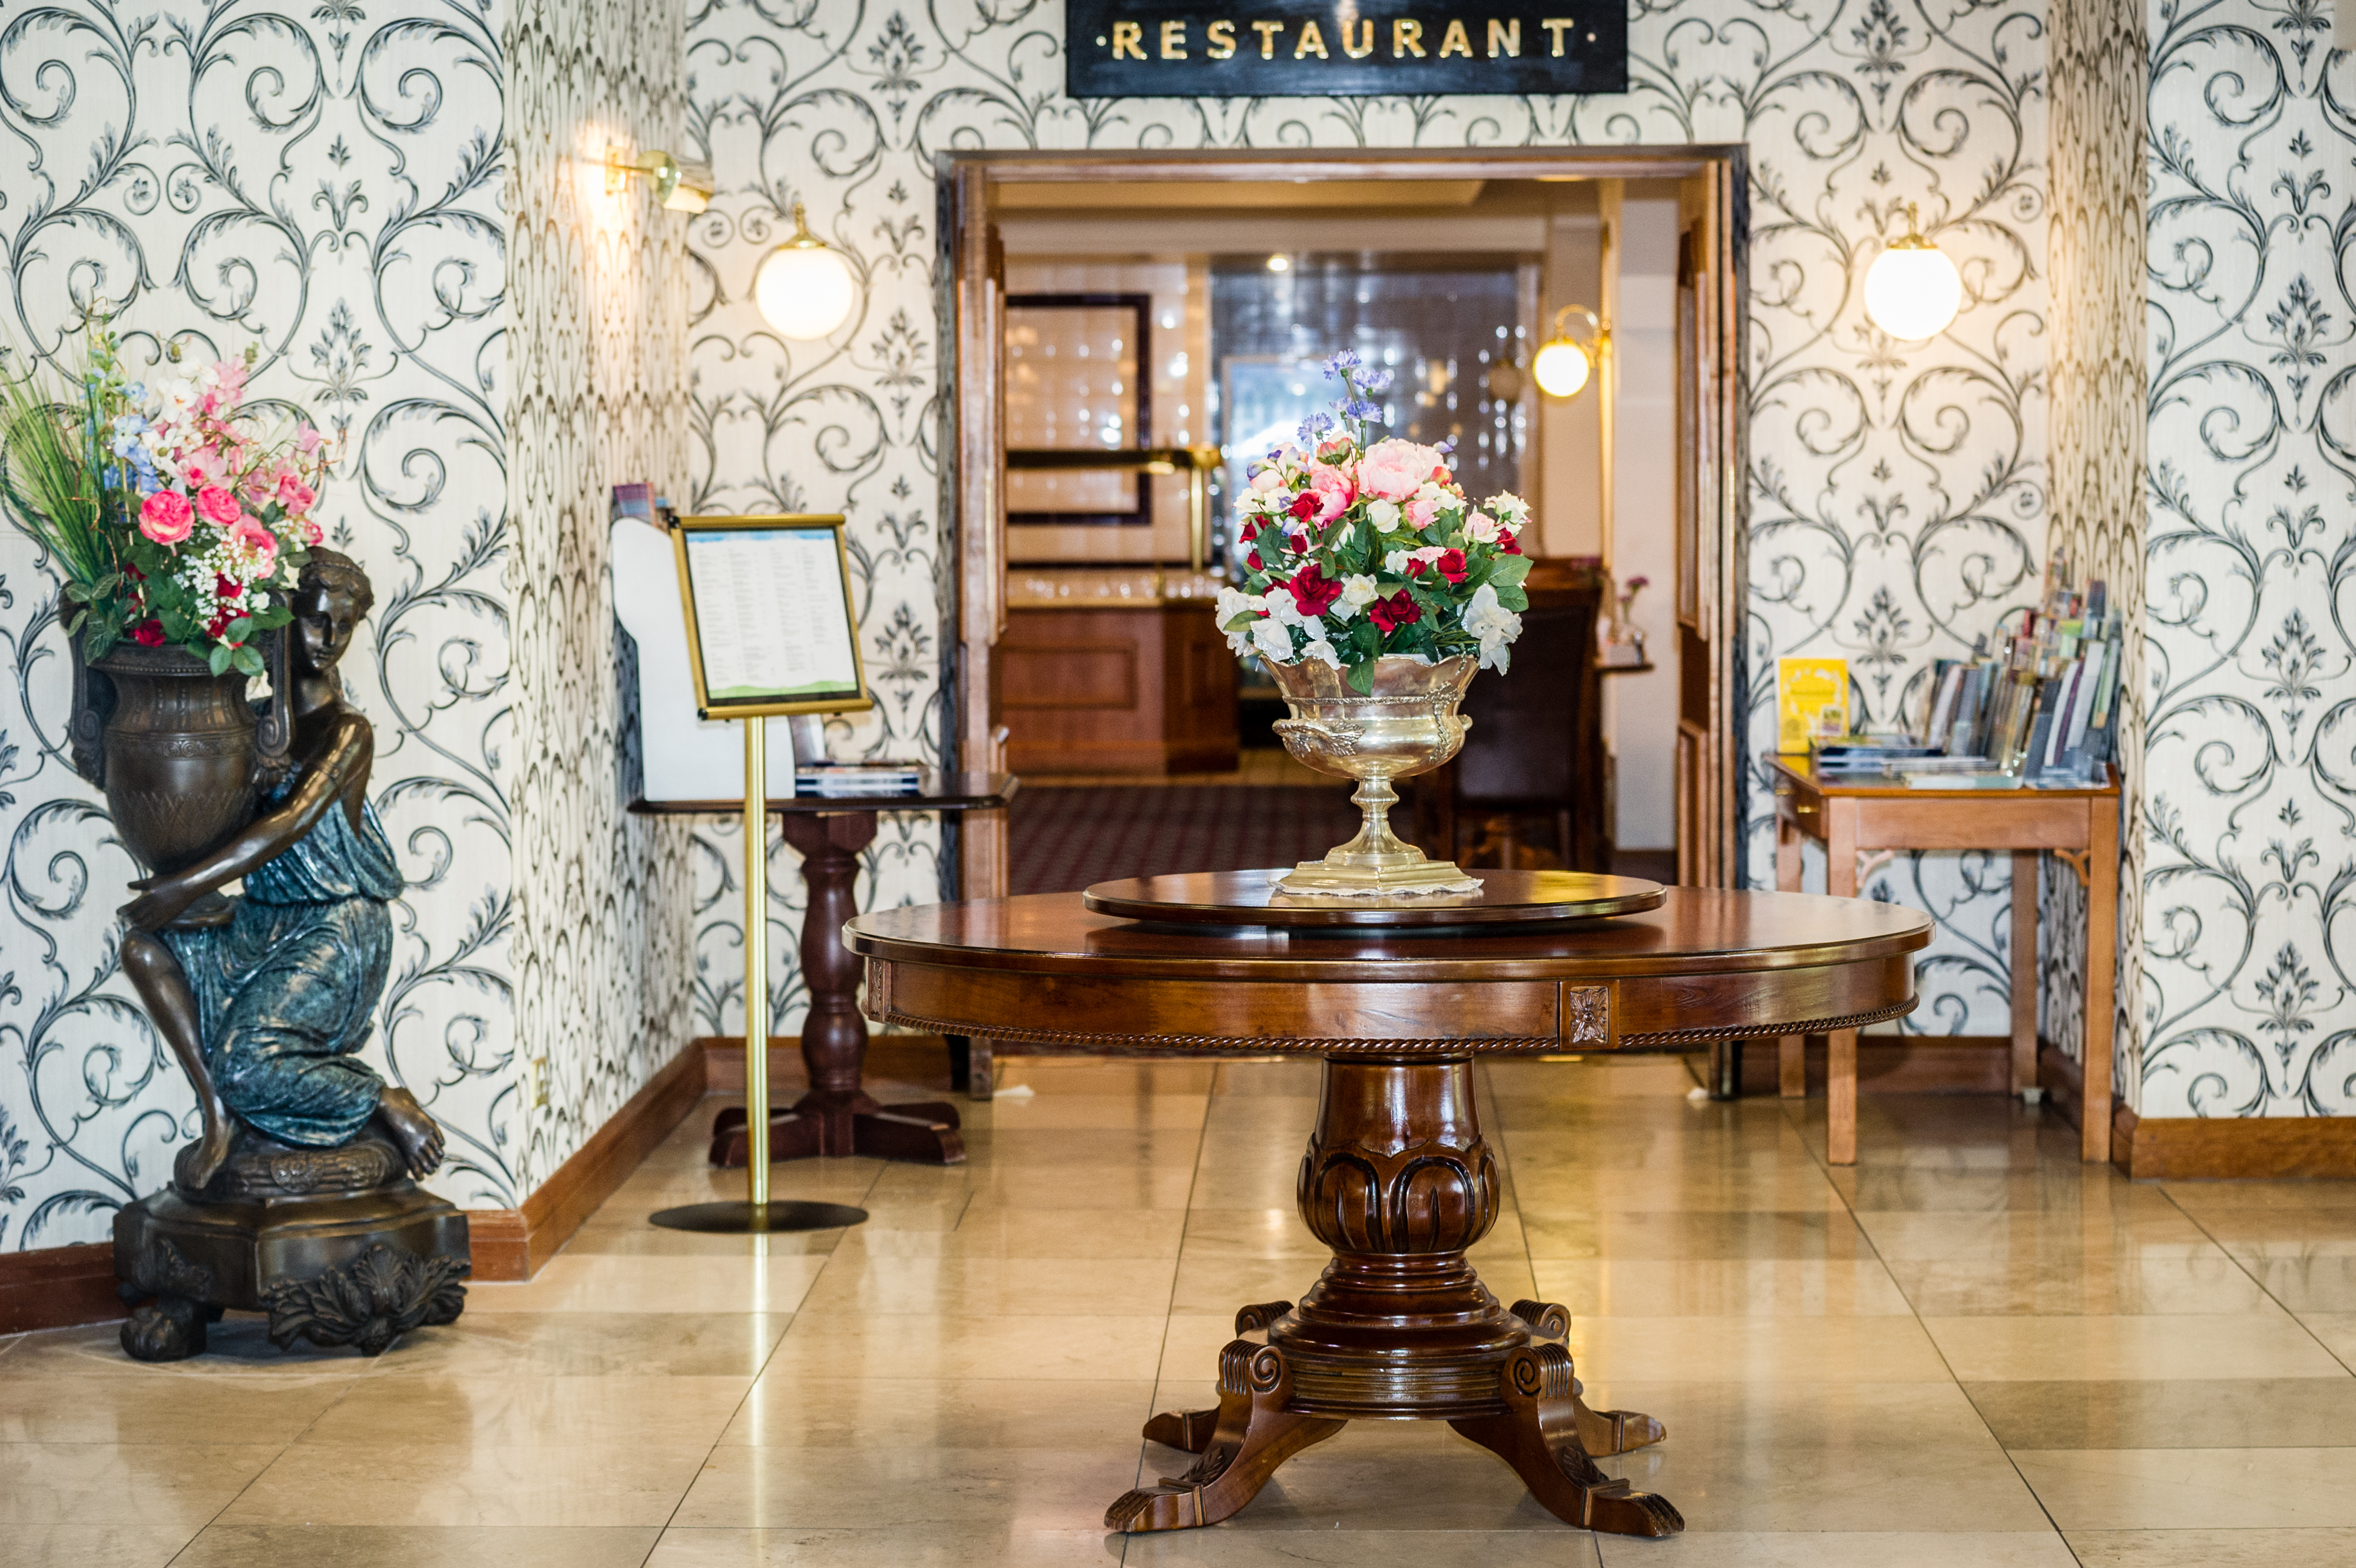 Three Counties Hotel Hereford - Restaurant entrance